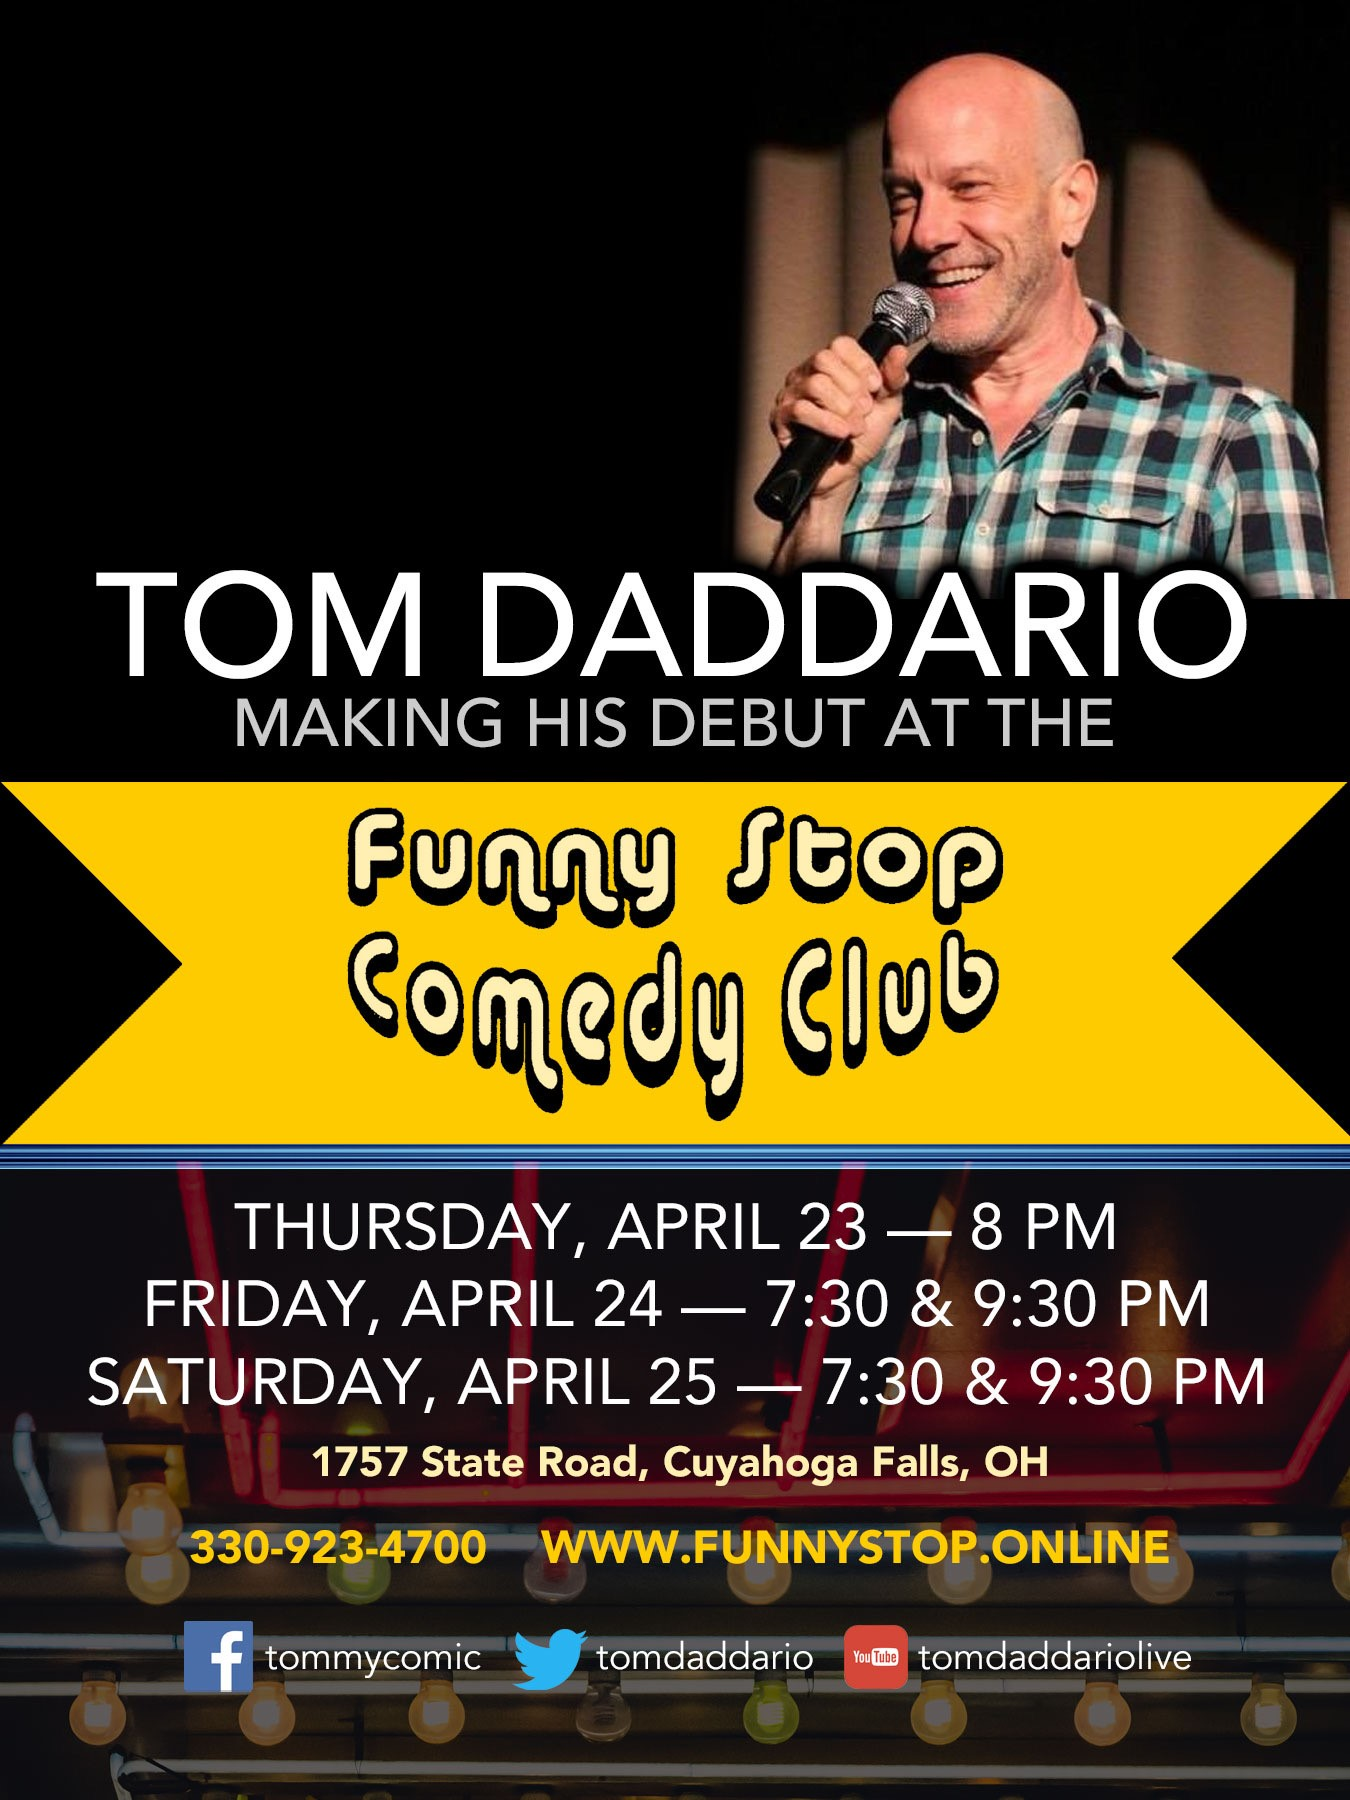 Tom Daddario 9:30 Show  on abr. 24, 21:30@Funny Stop Comedy Club - Buy tickets and Get information on Funny Stop funnystop.online